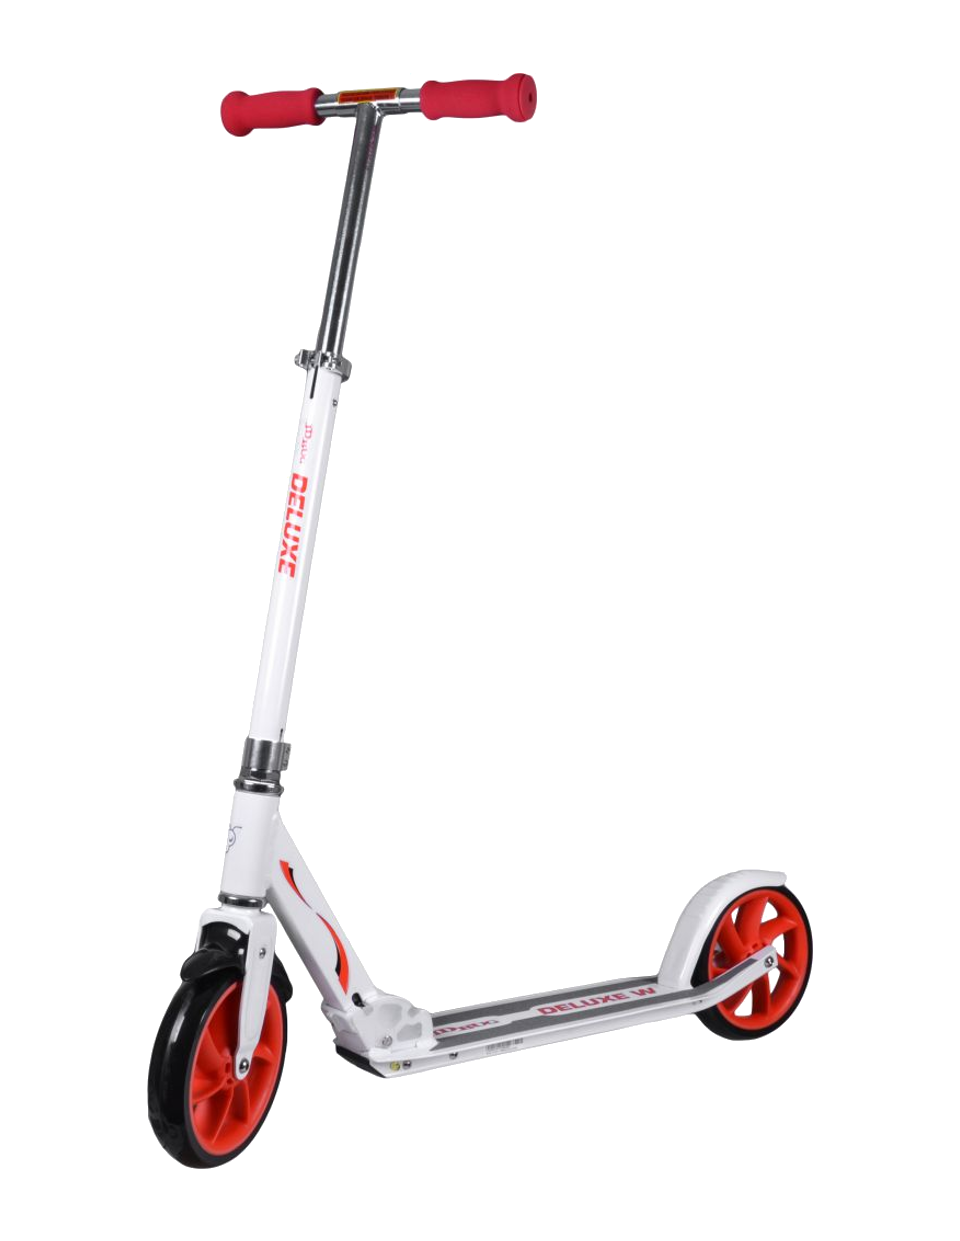 Download and use Kick Scooter PNG Image